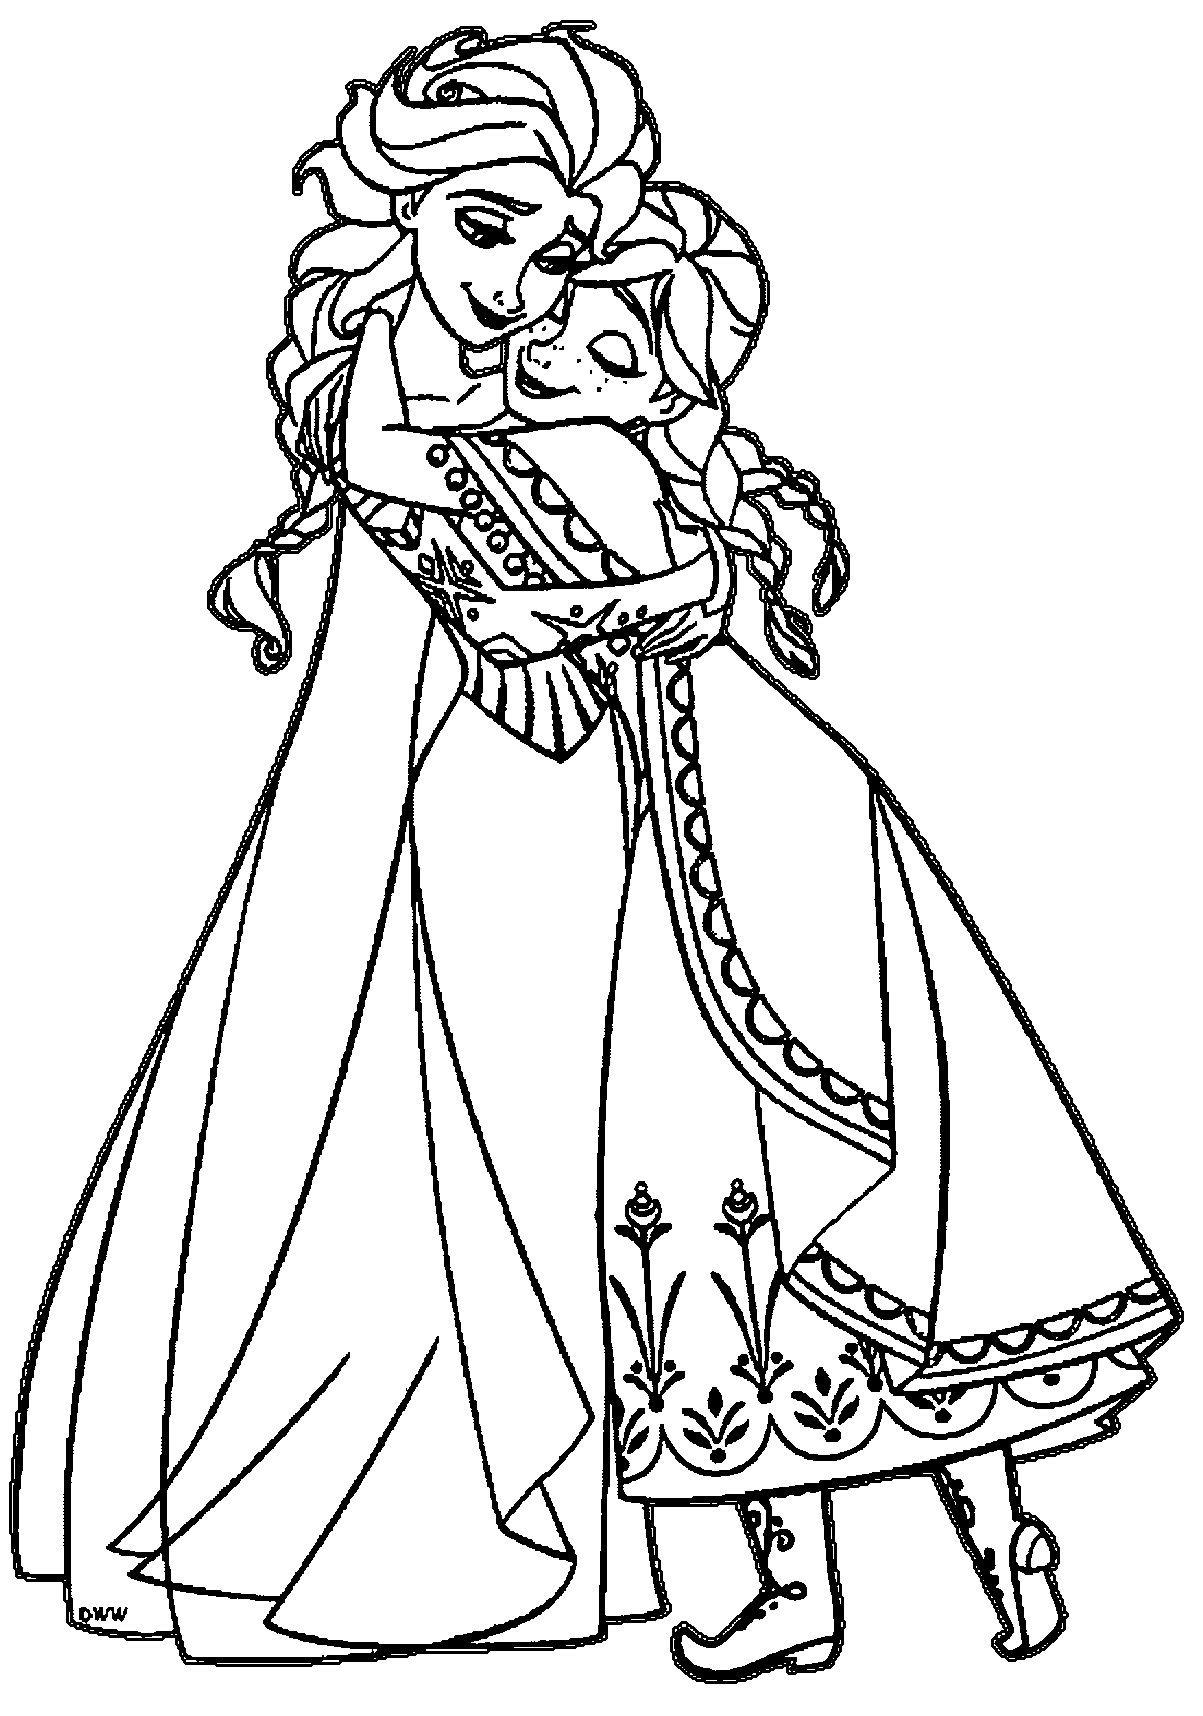 Frozen Elsa and Anna Hugging Coloring Page